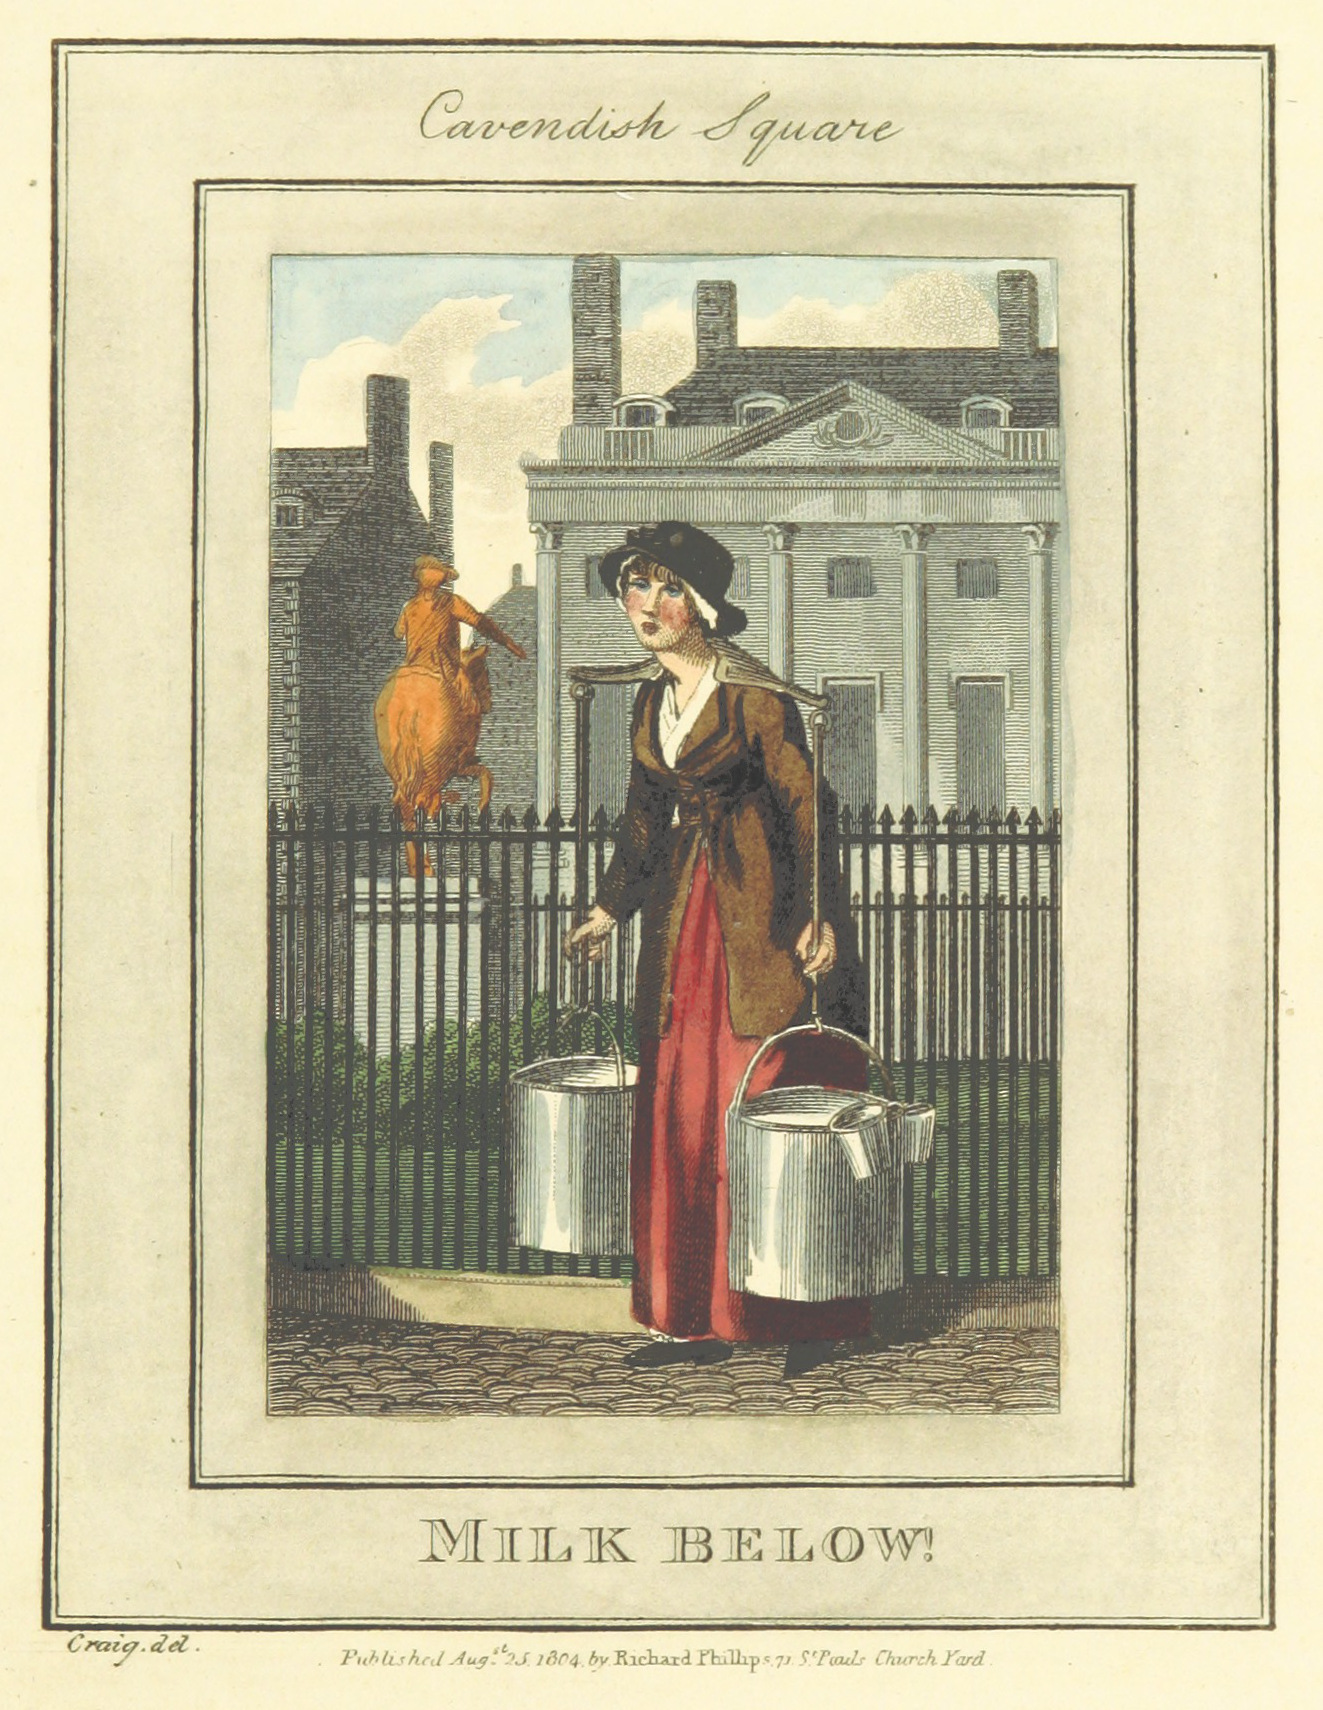 Phillips(1804)_p629_-_Cavendish_Square_-_Milk_Below!